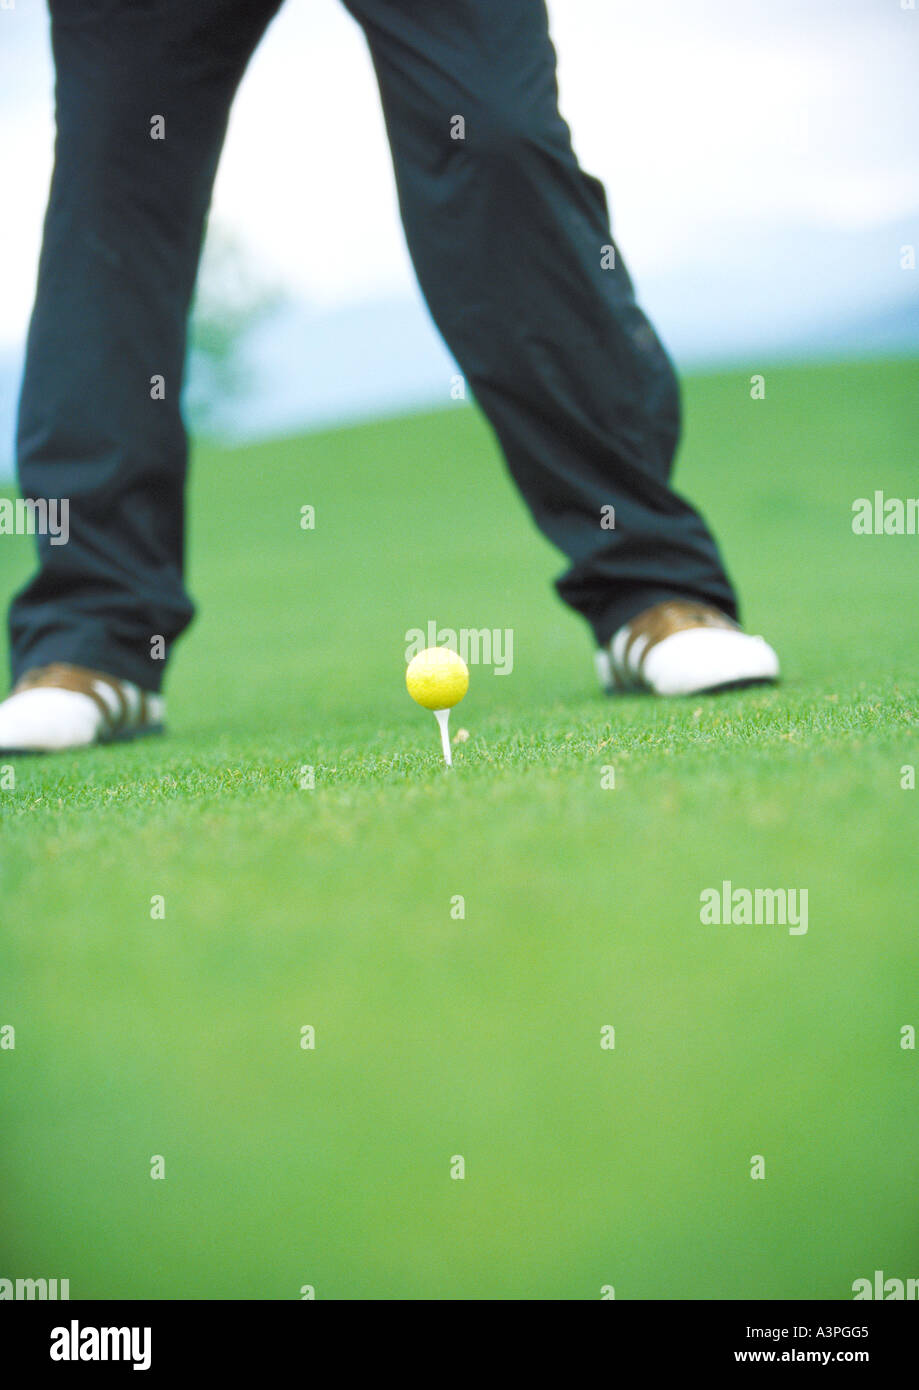 Golfer standing next to teed golf ball - Stock Image